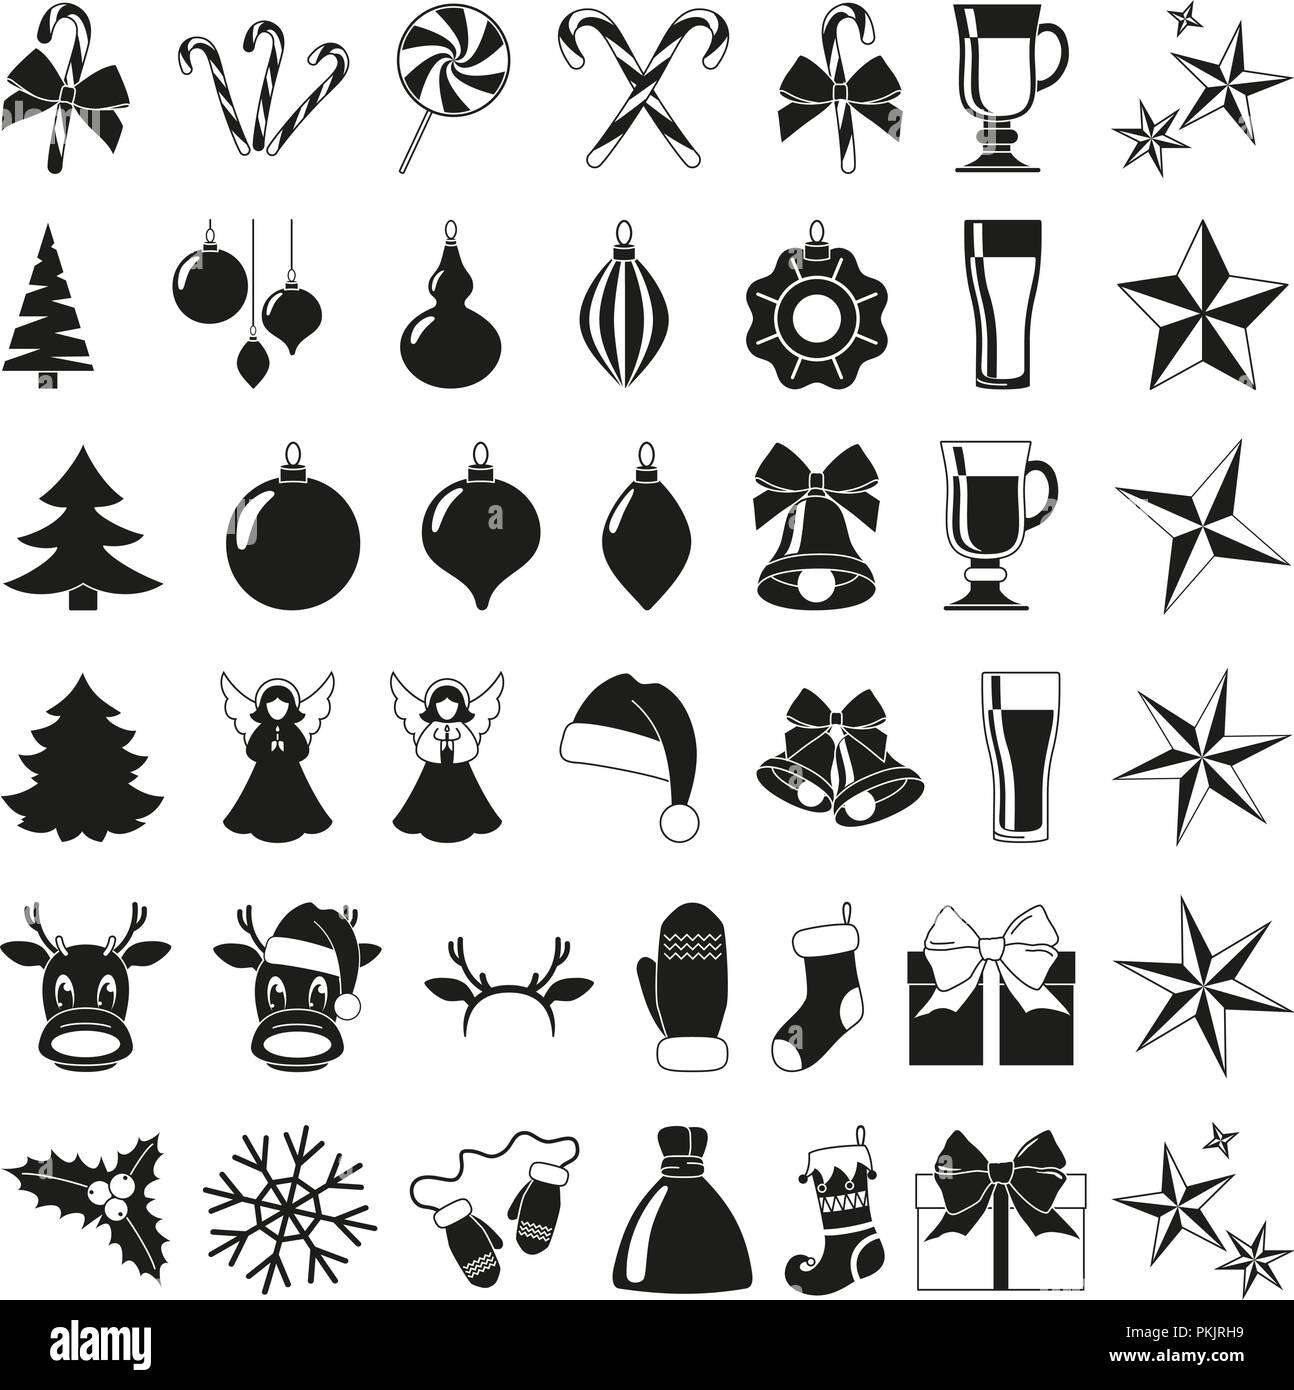 black and white 42 christmas elements new year holiday decorations xmas themed vector illustration for icon logo sticker patch label sign badg